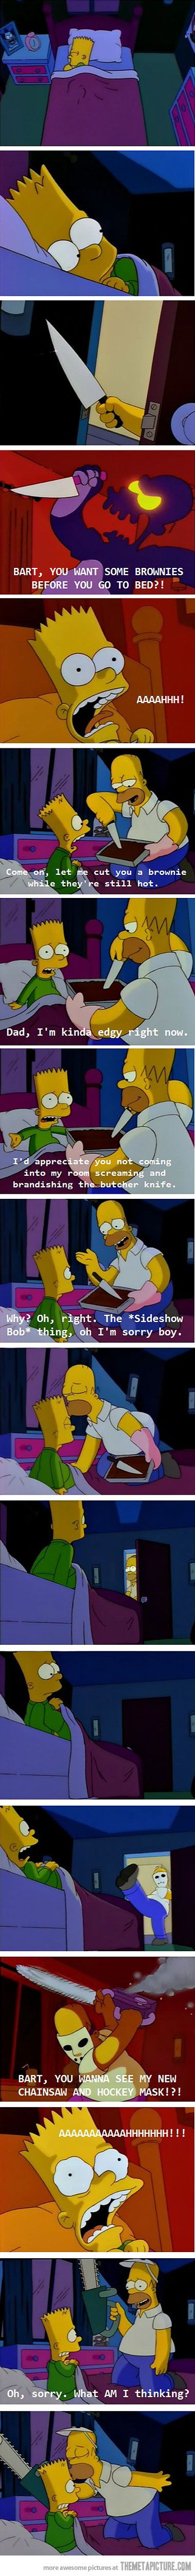 Parenting Level: Homer Simpson